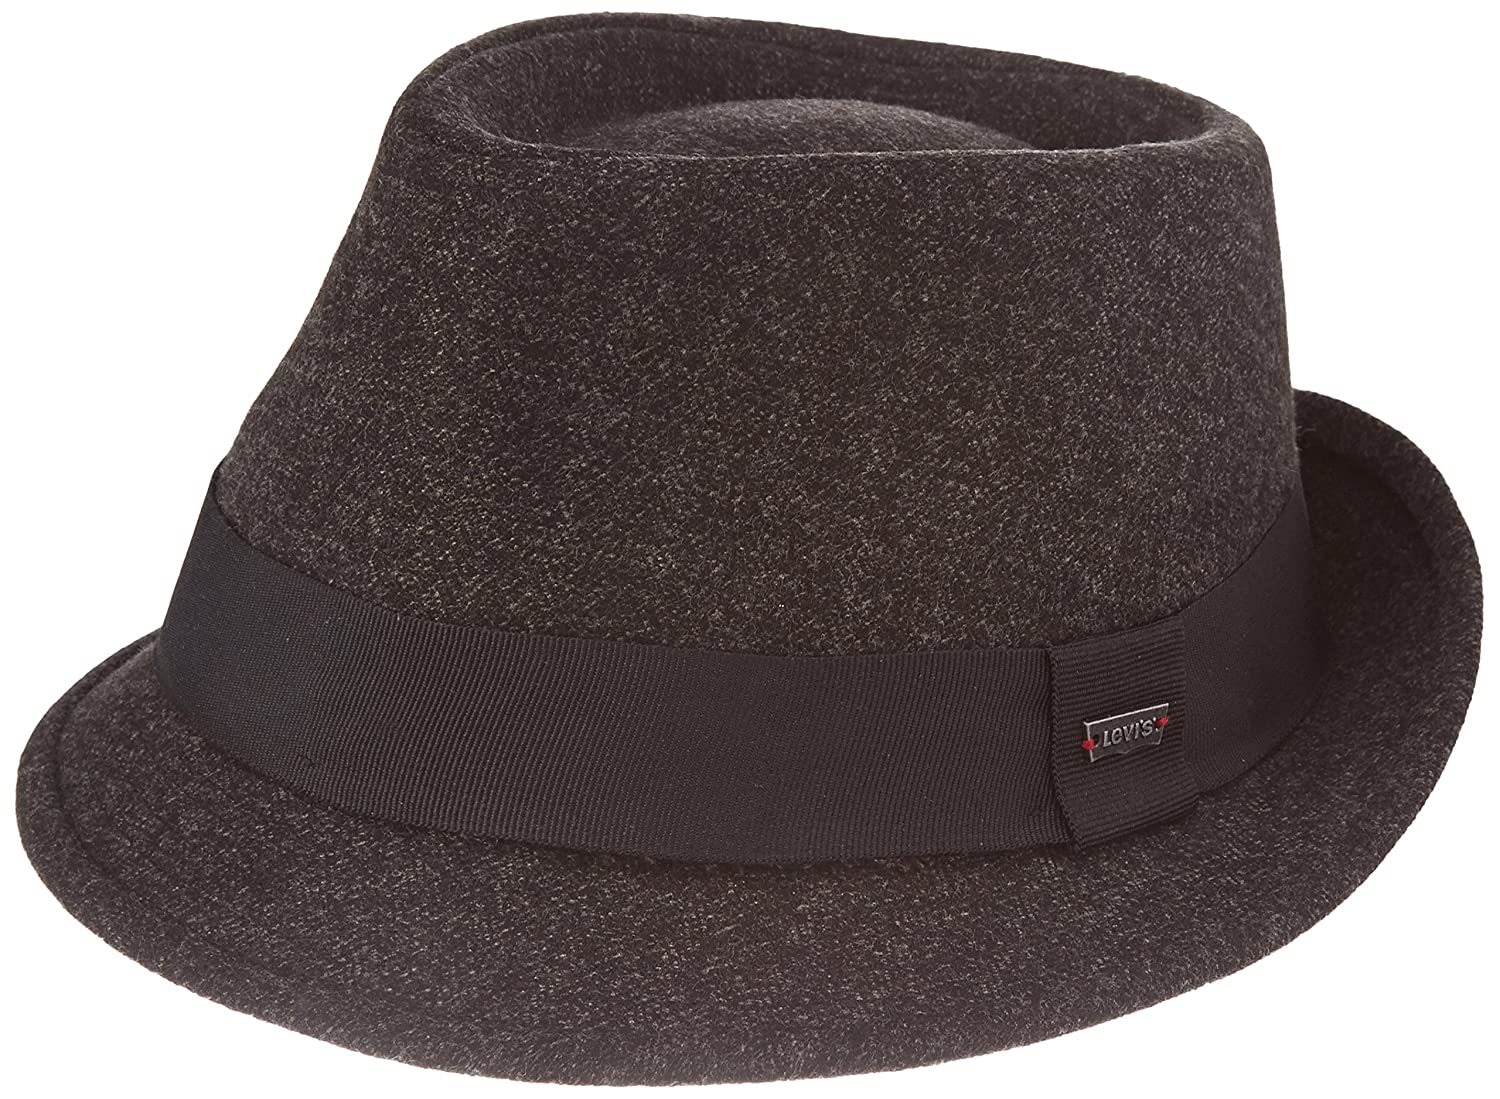 Levi's Herringbone Trilby Black Outside Band Porkpie Hat Levi' s 222167-8